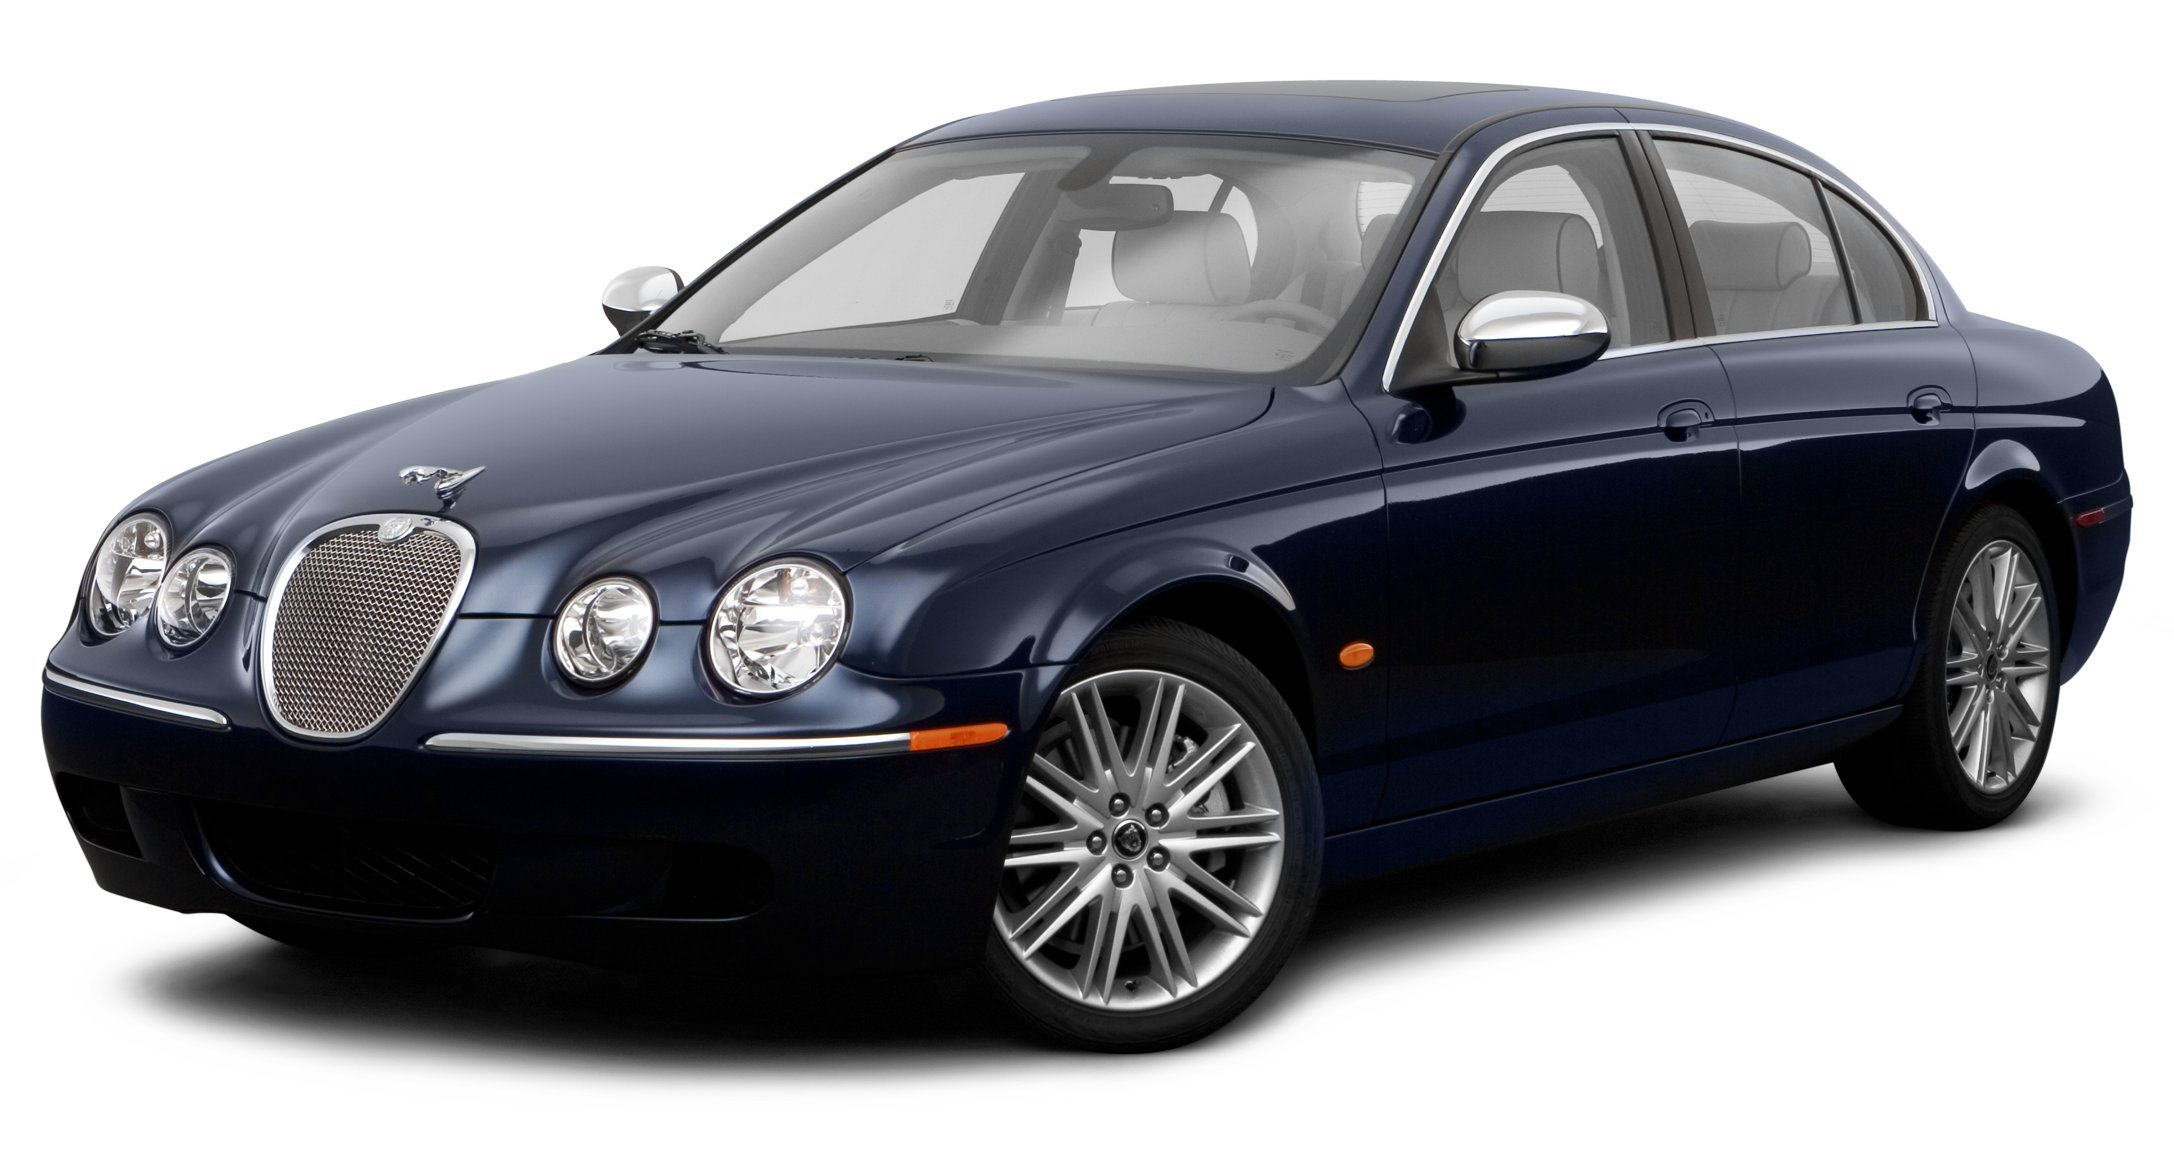 photo of jaguar manu s type view image